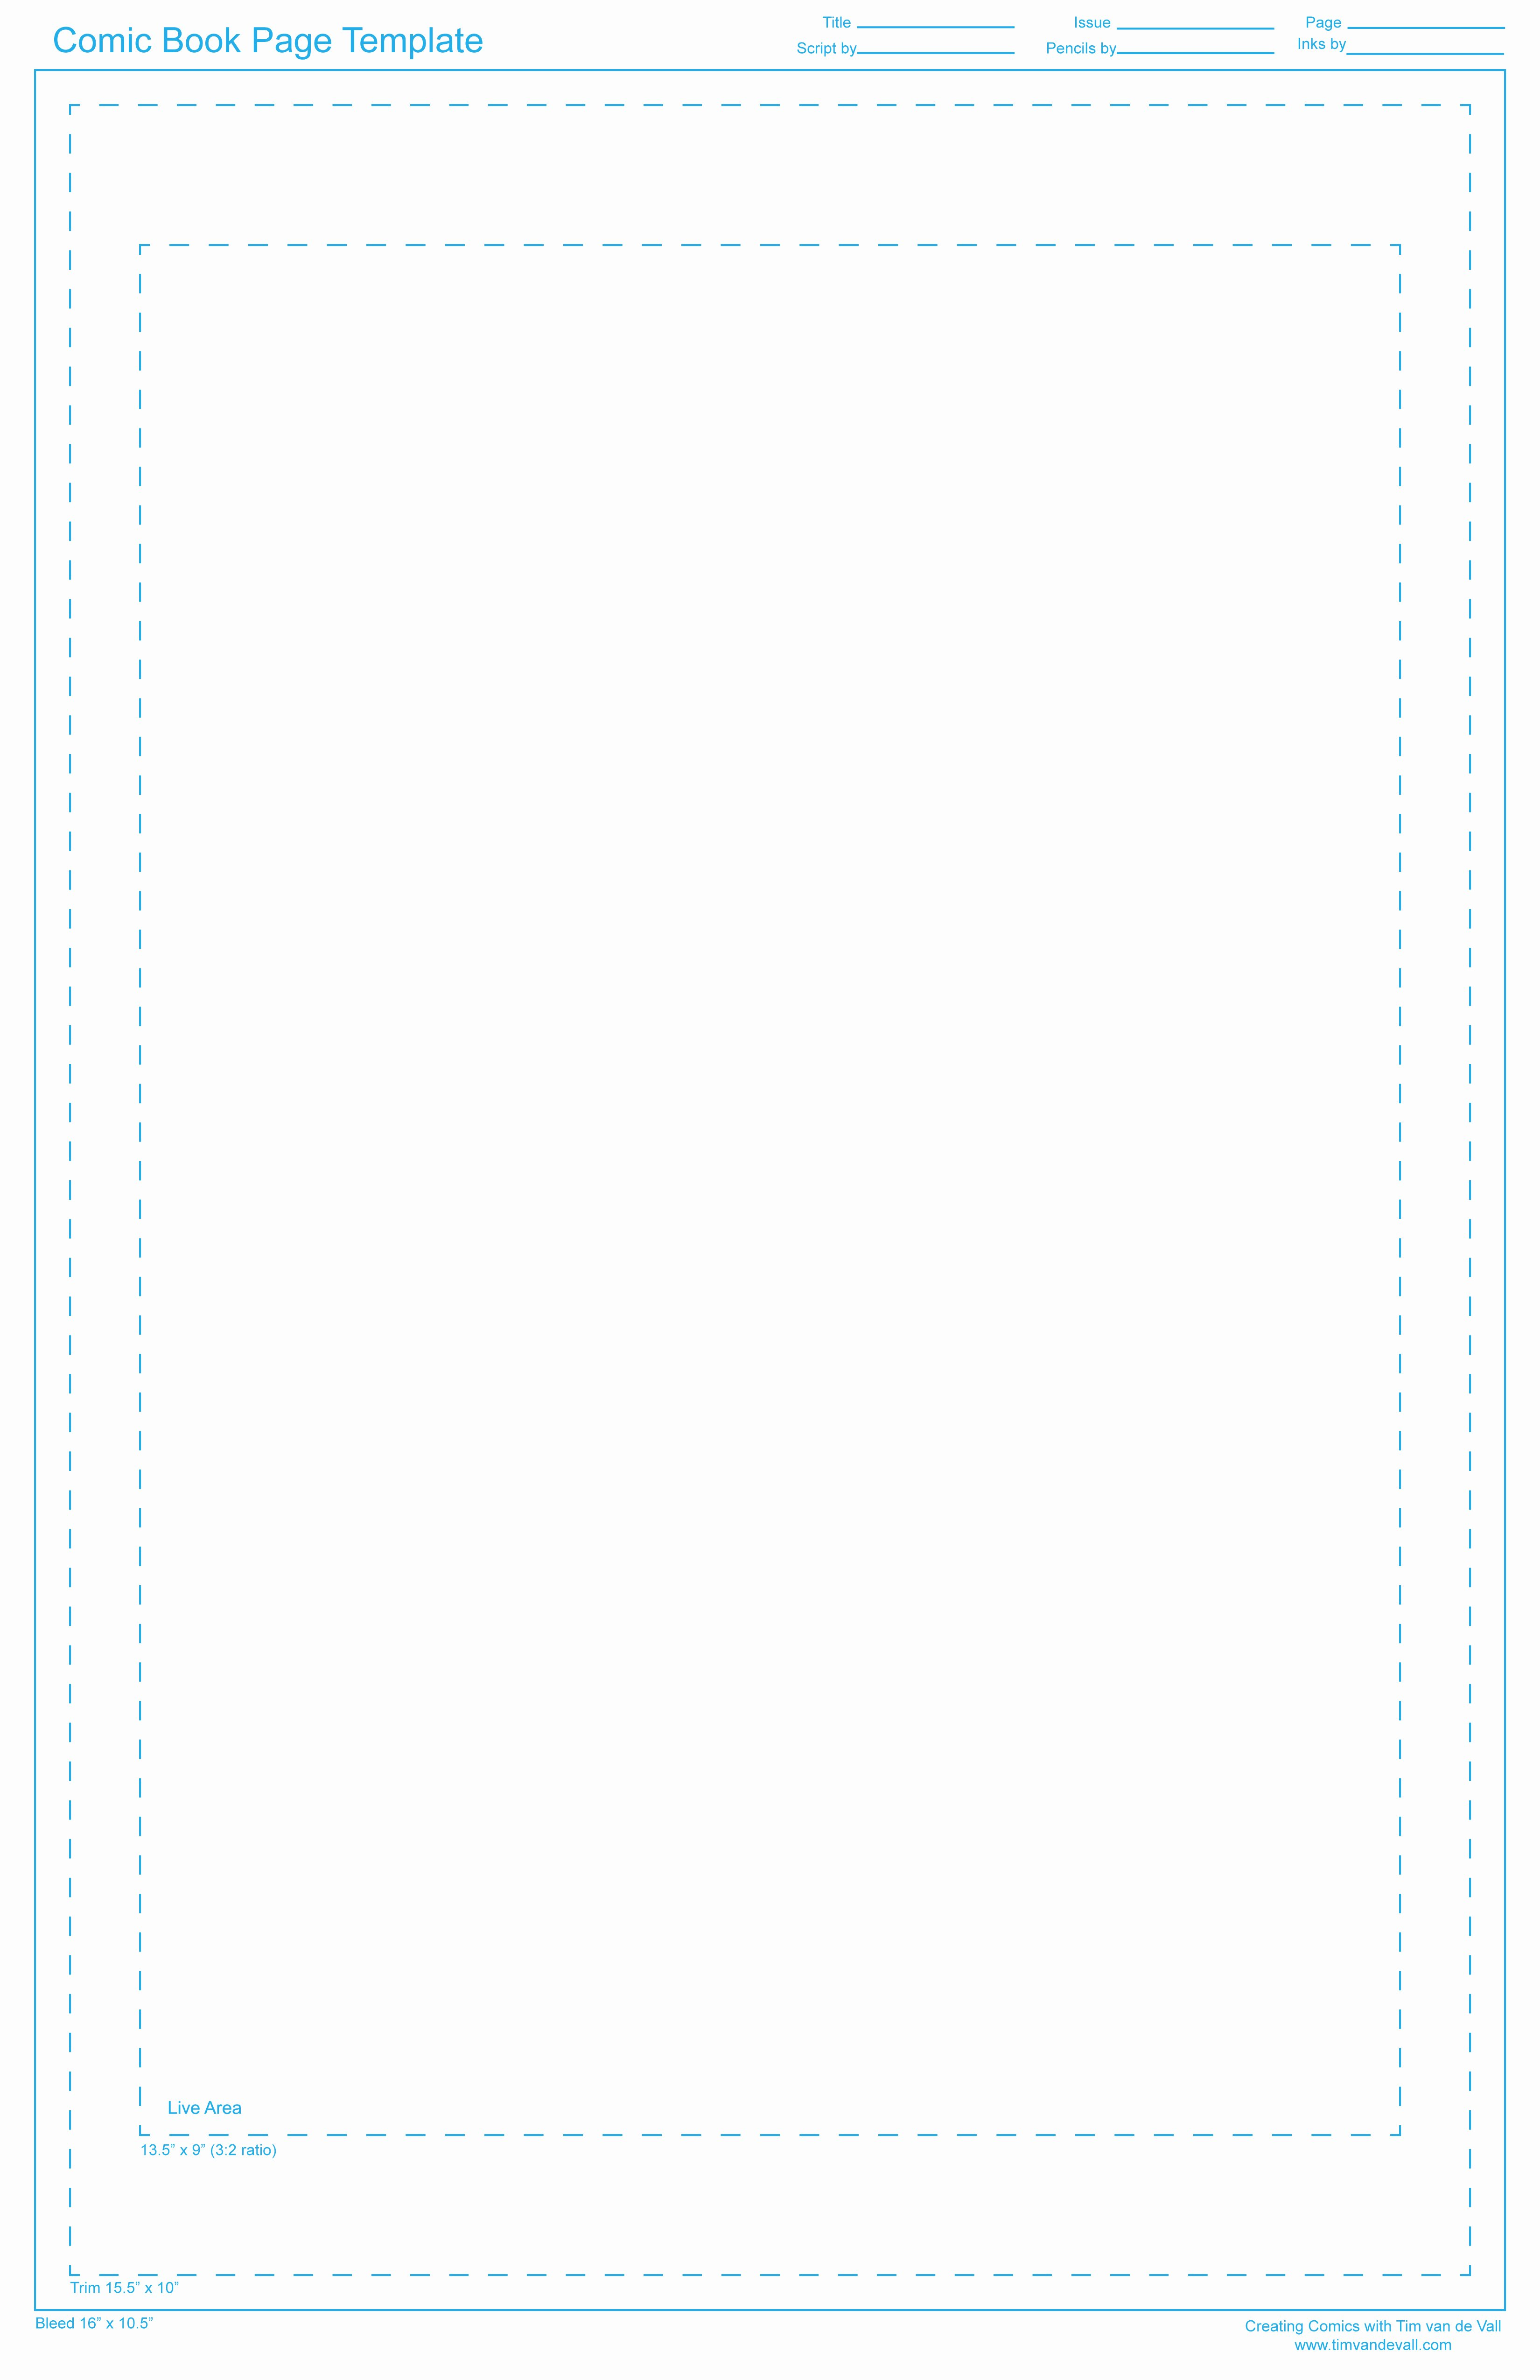 Comic Book Cover Template Lovely Free Ic Book Page Template Creating Ics with Tim